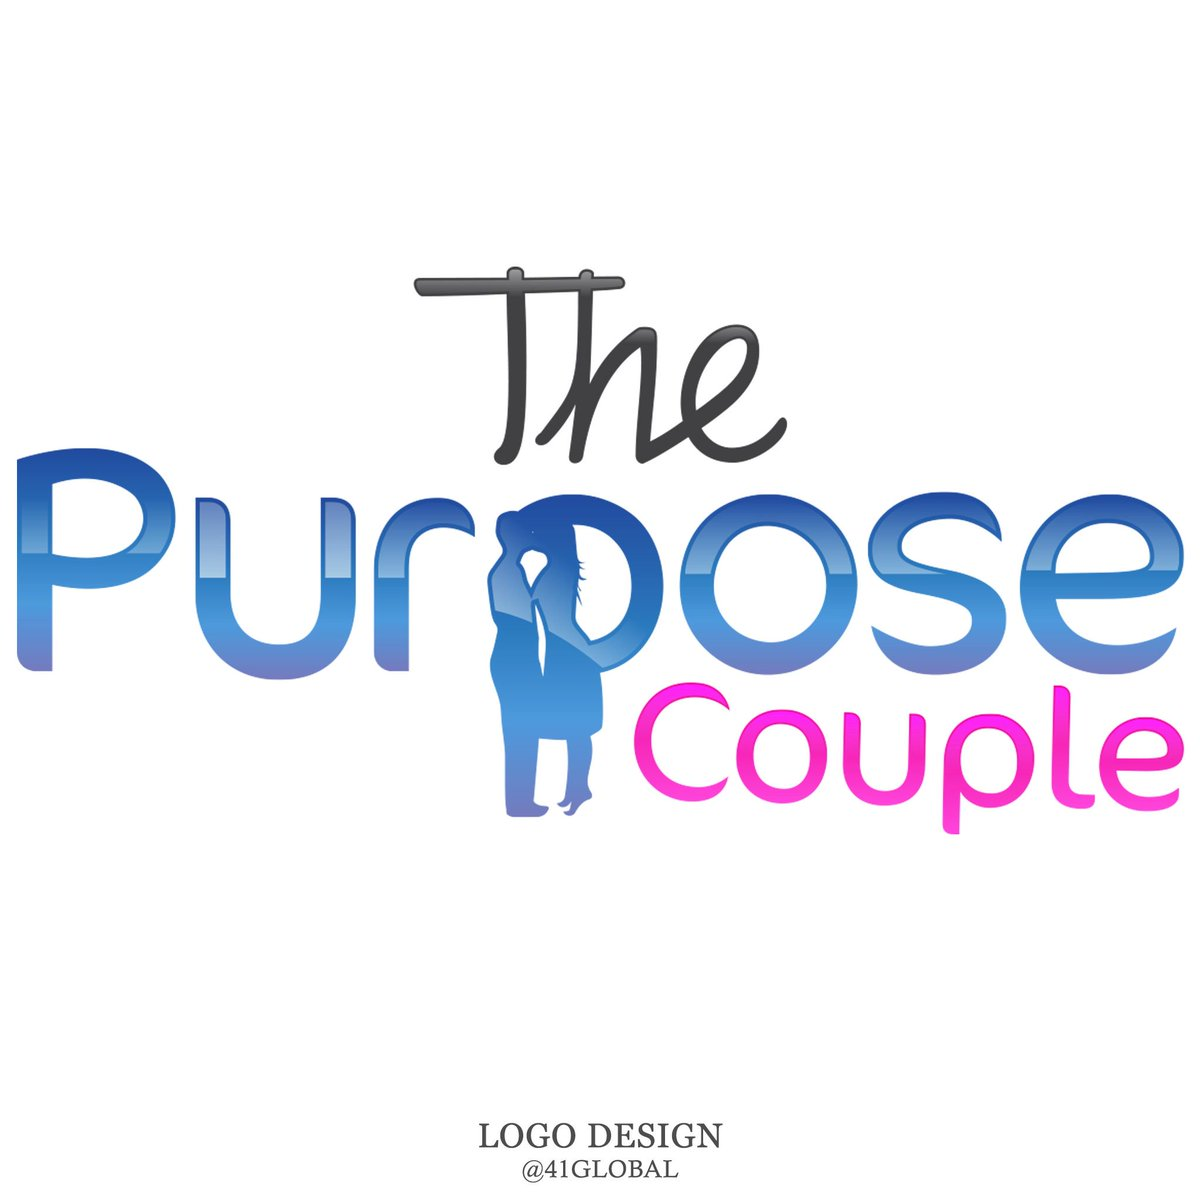 New Logo Design for The Purpose Couple ⠀ #41Global #logo #purposecouple #logos #photoshop #customlogo #branding